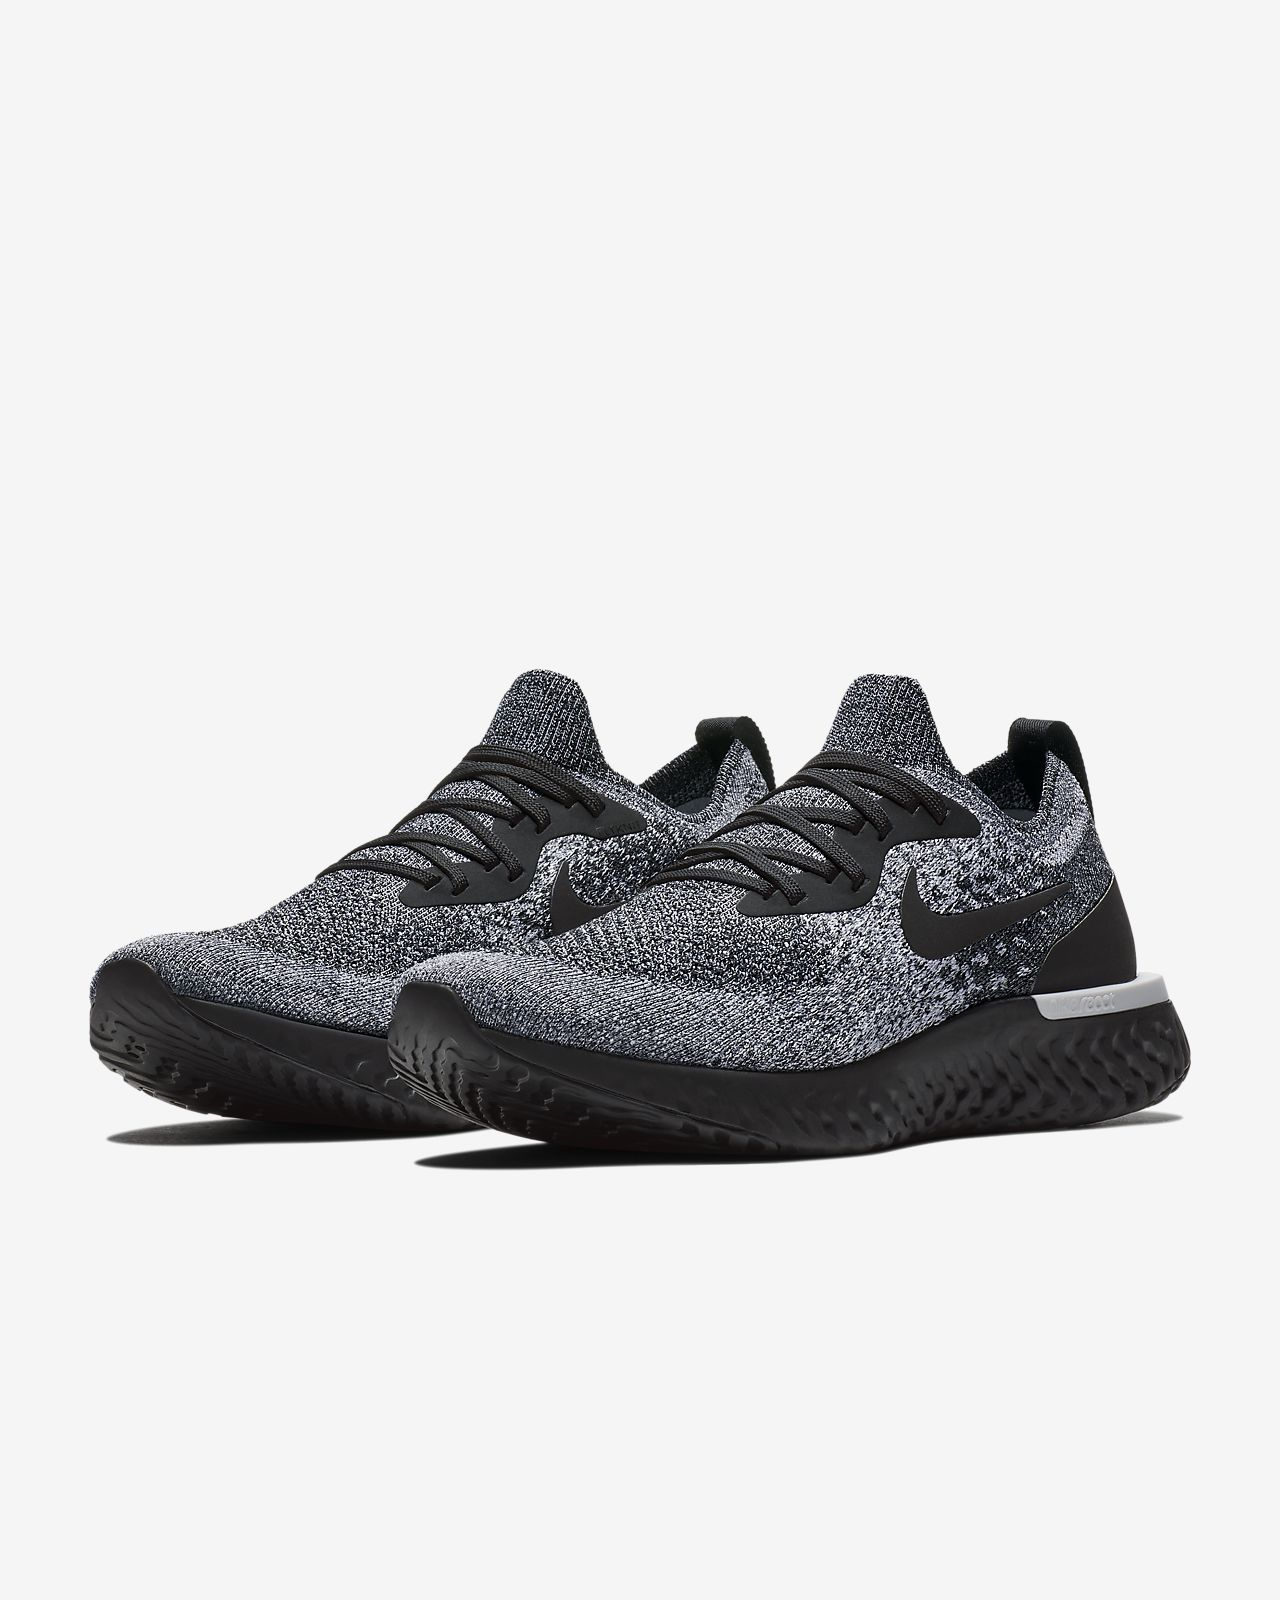 Men s Running Shoe. Nike Epic React Flyknit ae267f52b